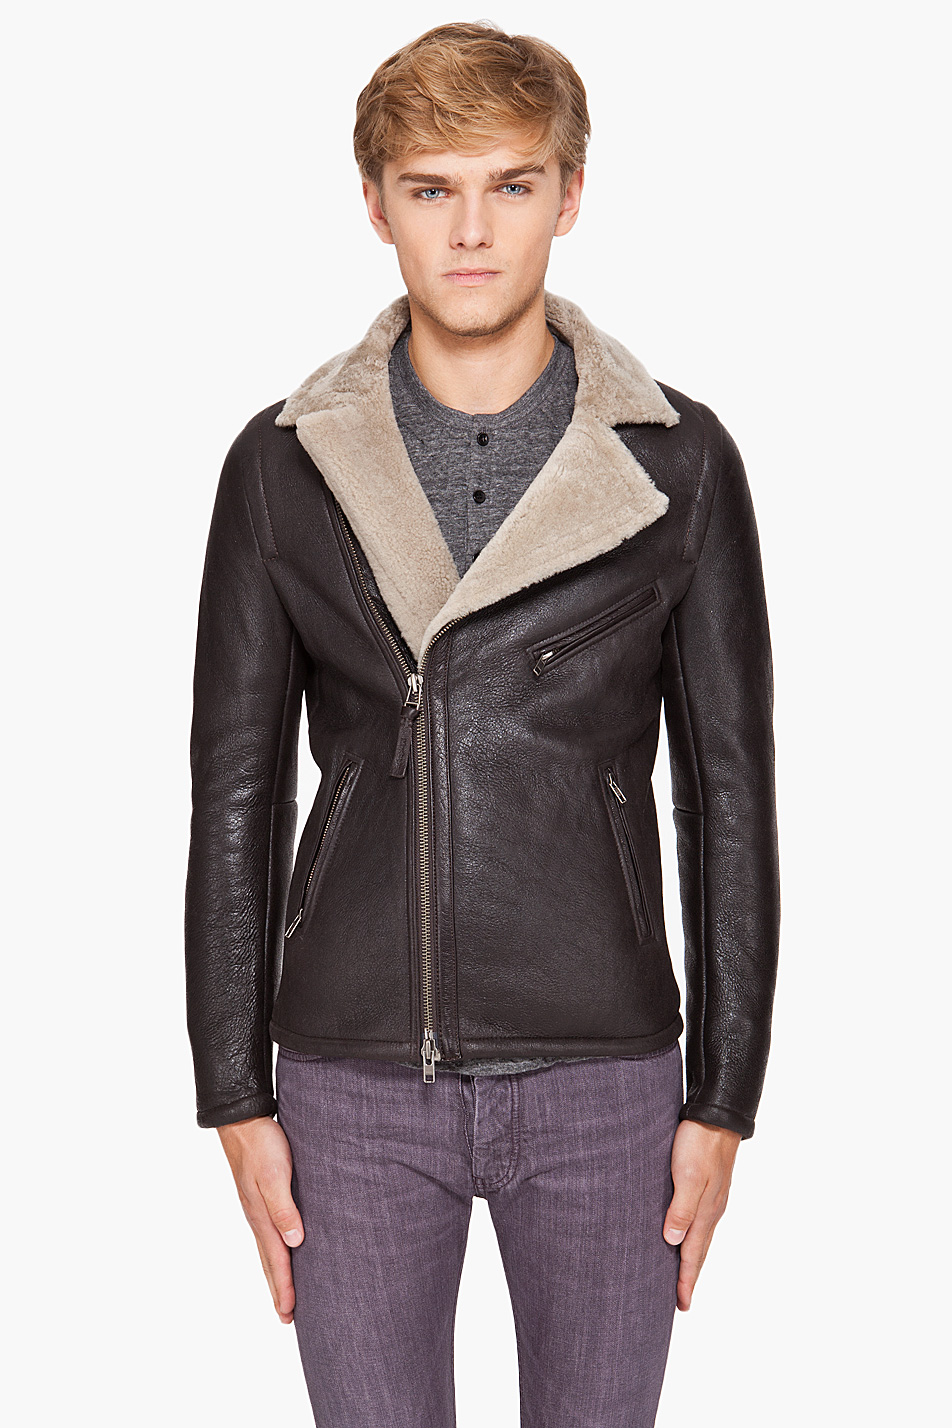 Lyst Mackage Sheepskin Leather Jacket In Brown For Men